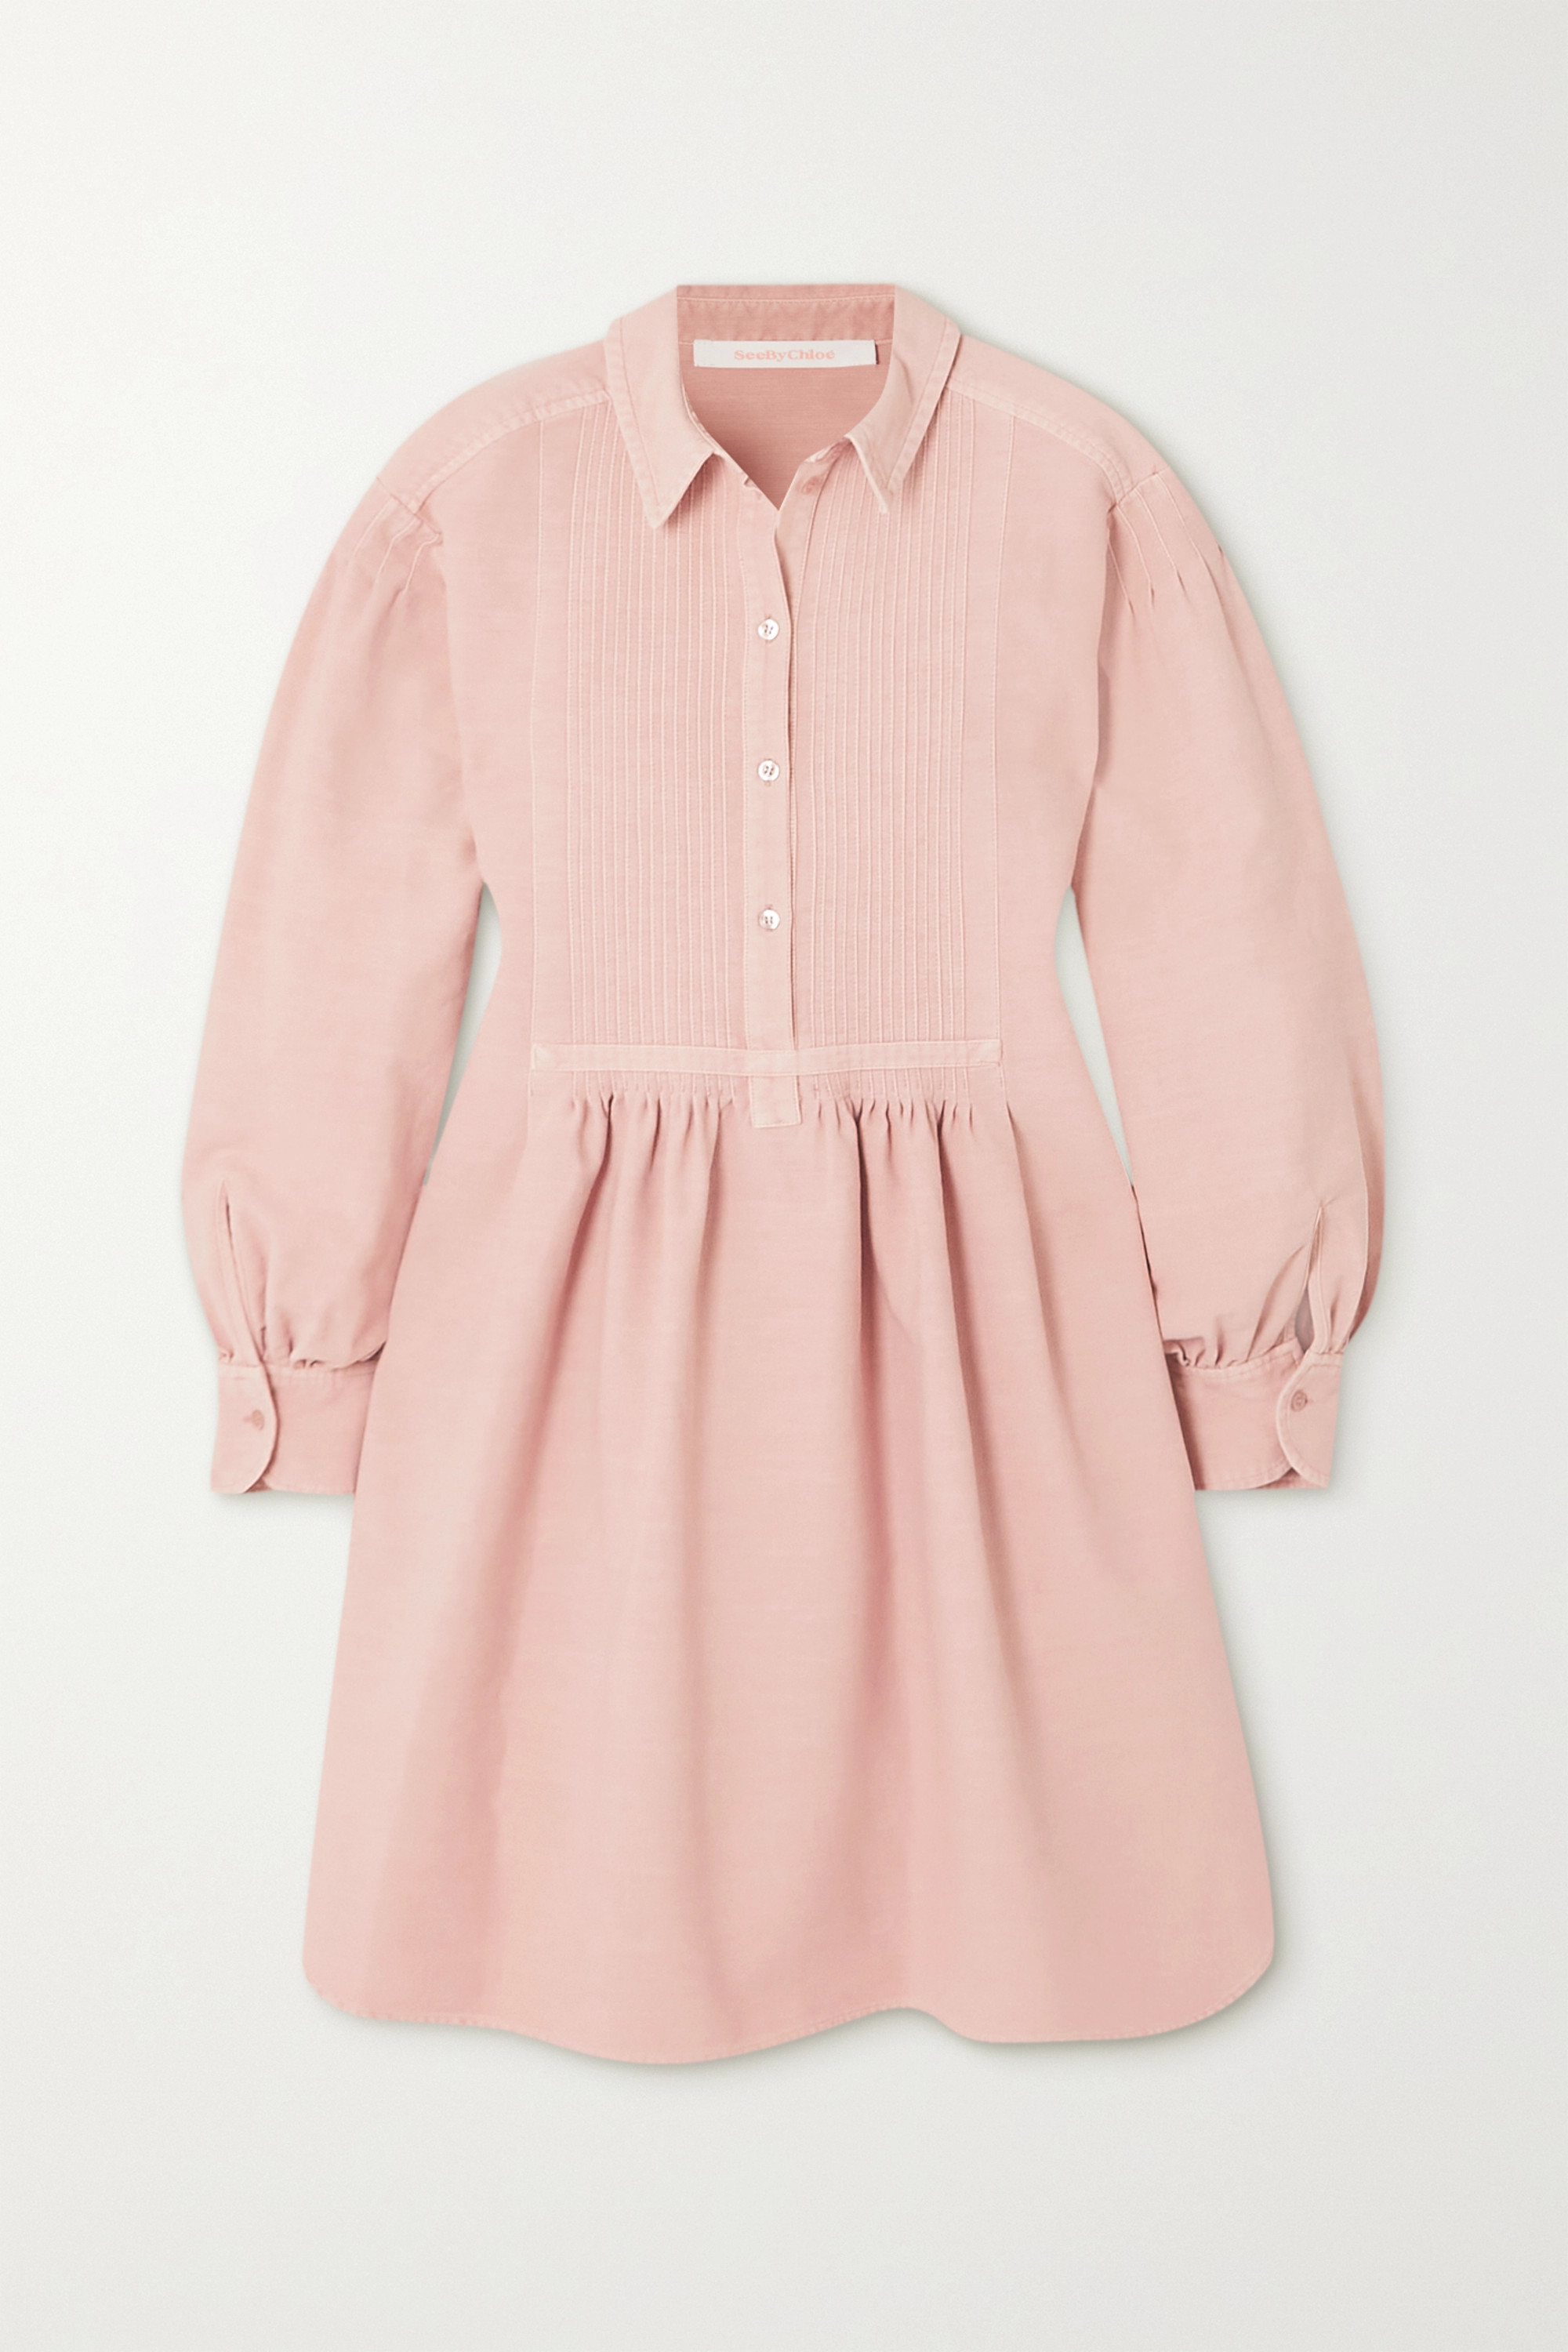 See By Chloé Oversized pintucked cotton mini shirt dress